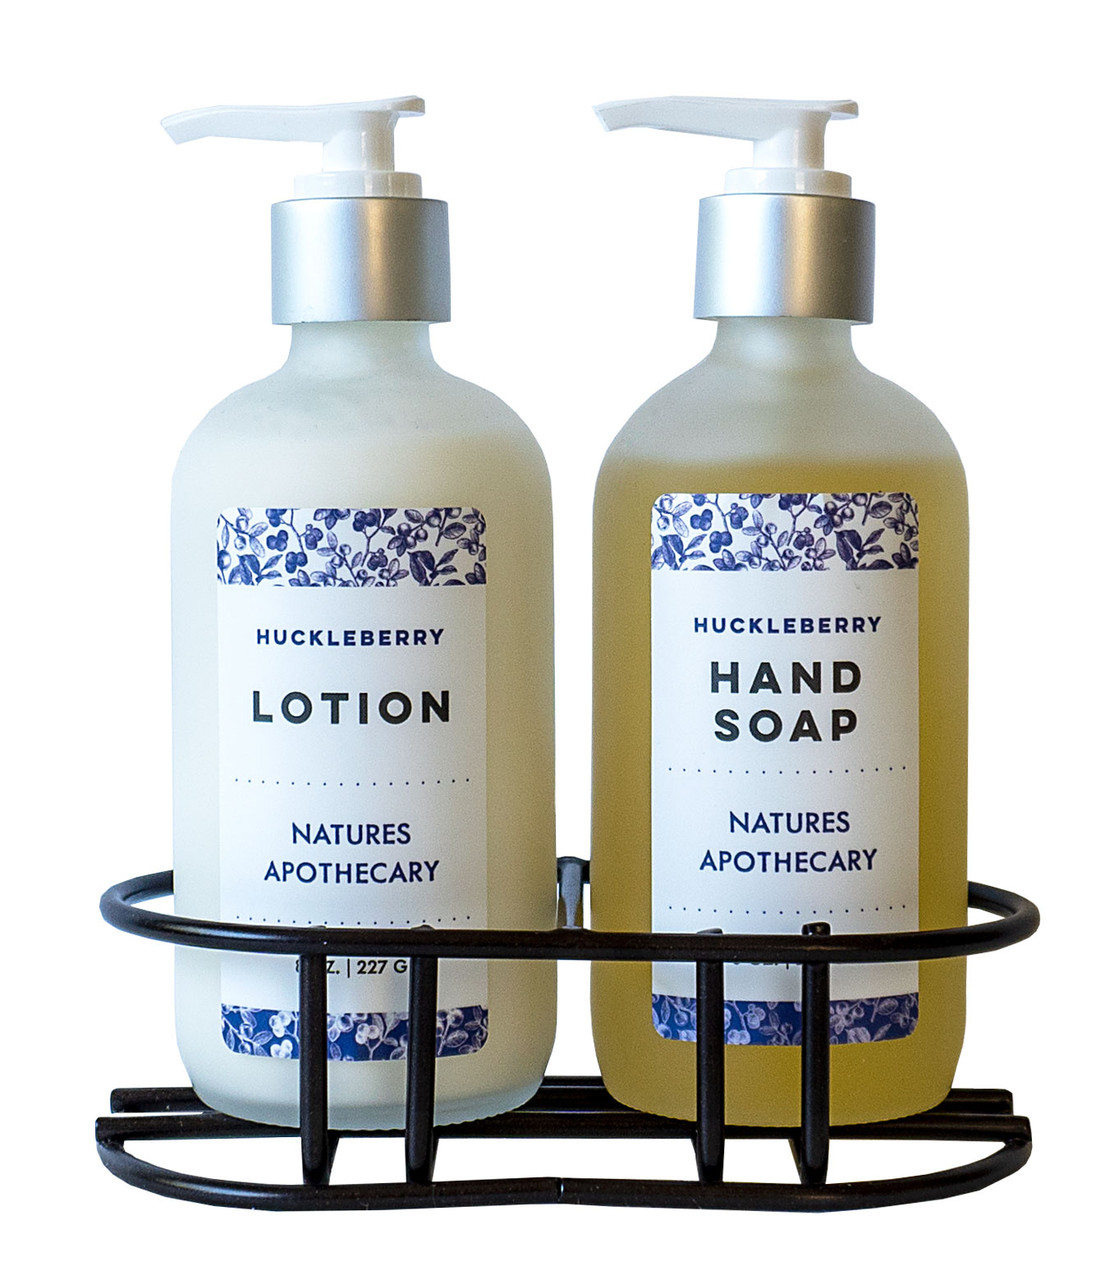 DAYSPA Body Basics Natures Apothecary Huckleberry Liquid Hand Soap